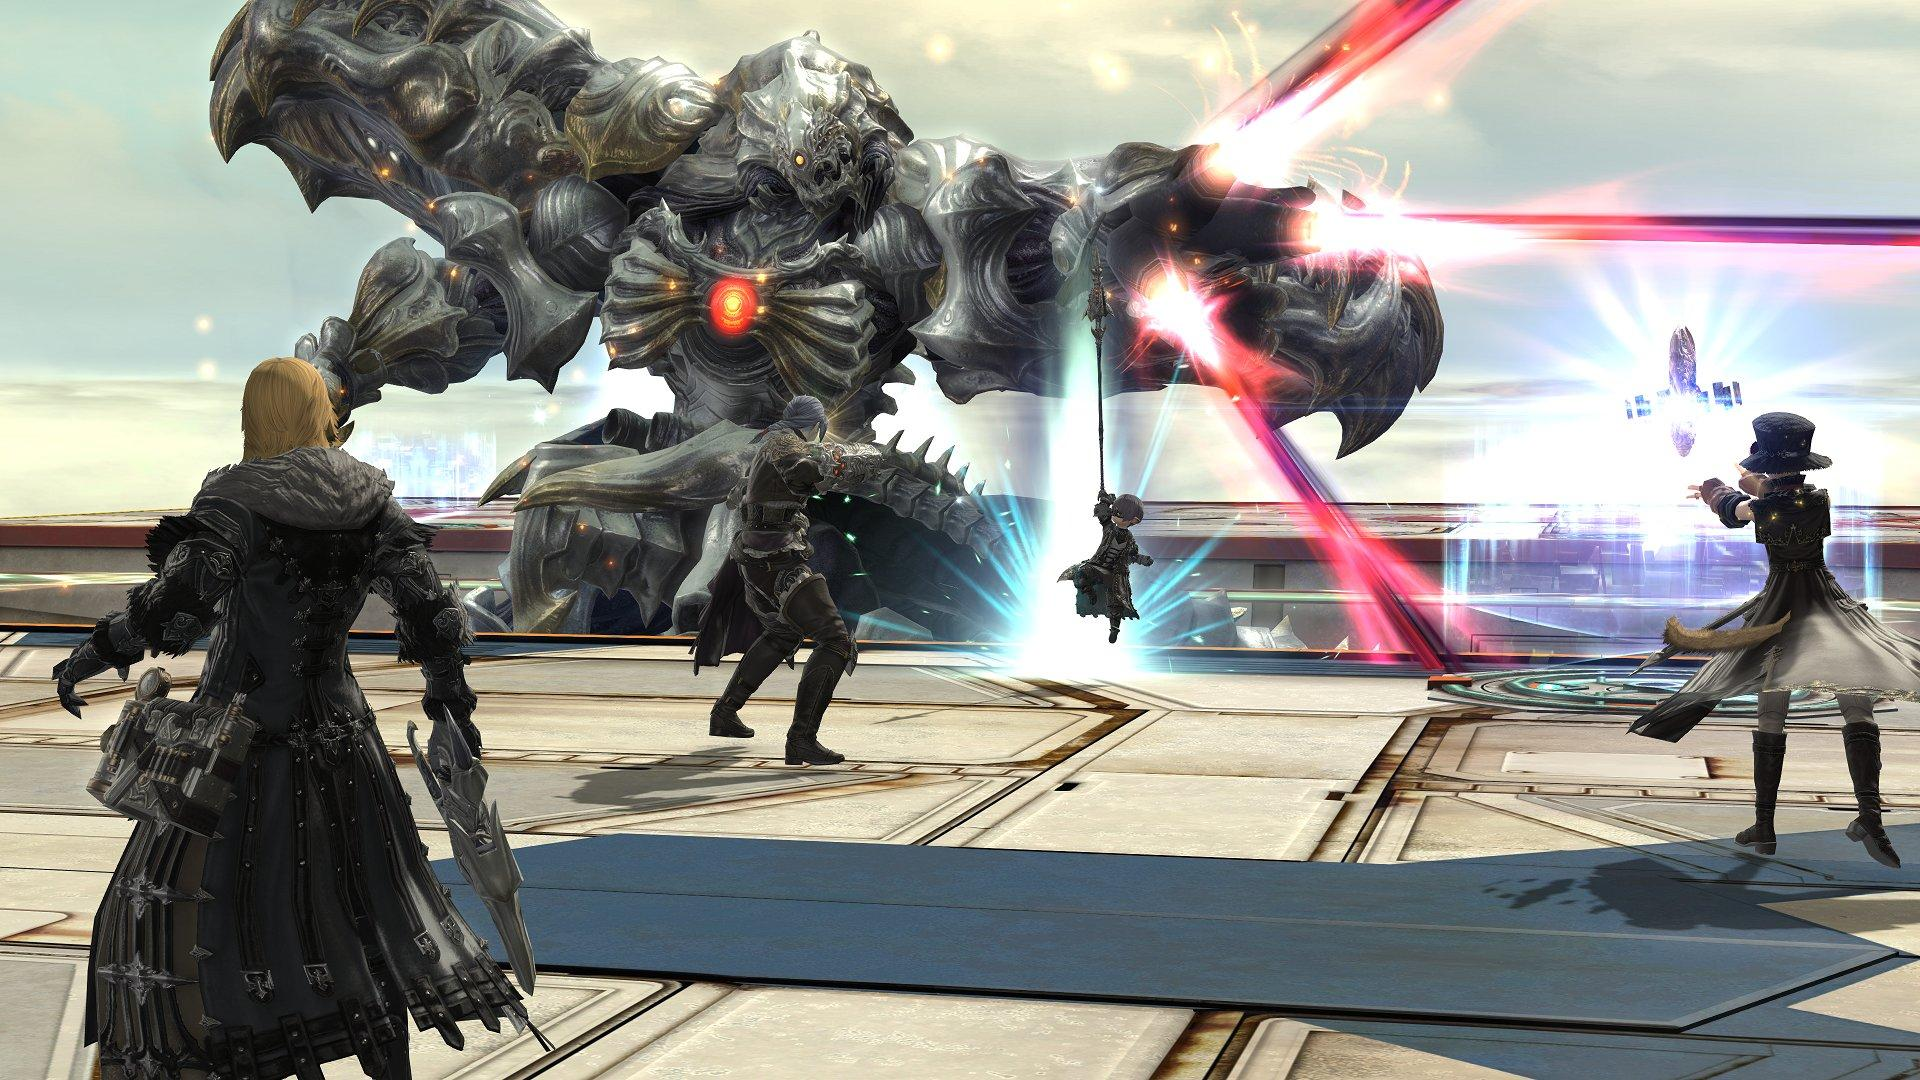 The Diamond Weapon, a boss featured in Final Fantasy 14 Shadowbringers